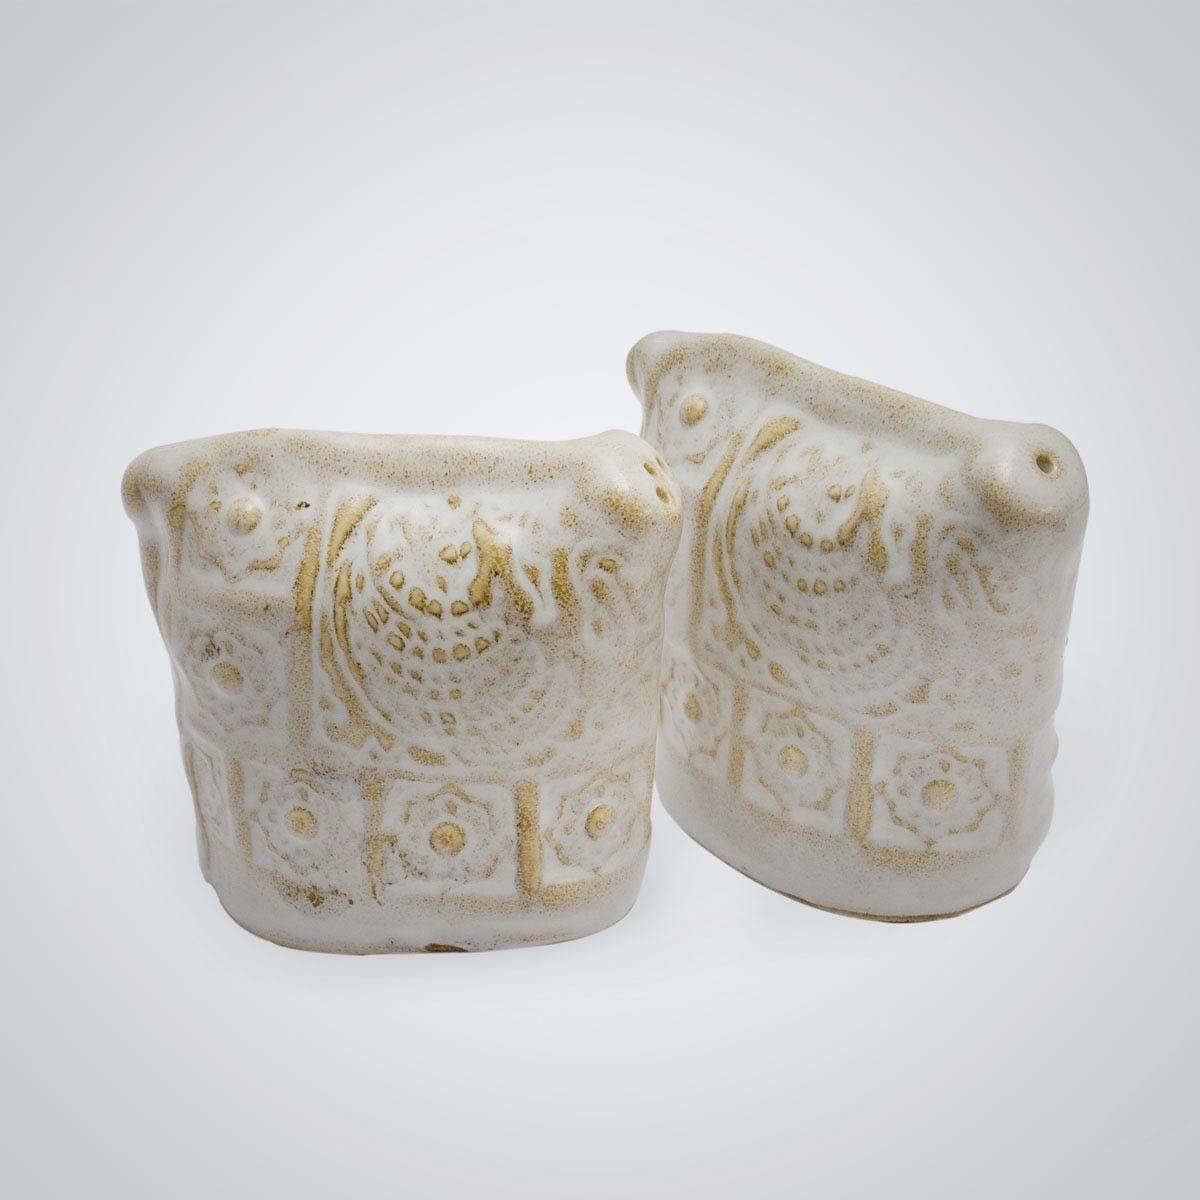 White Ceramic Salt & Pepper Holder - 1pc